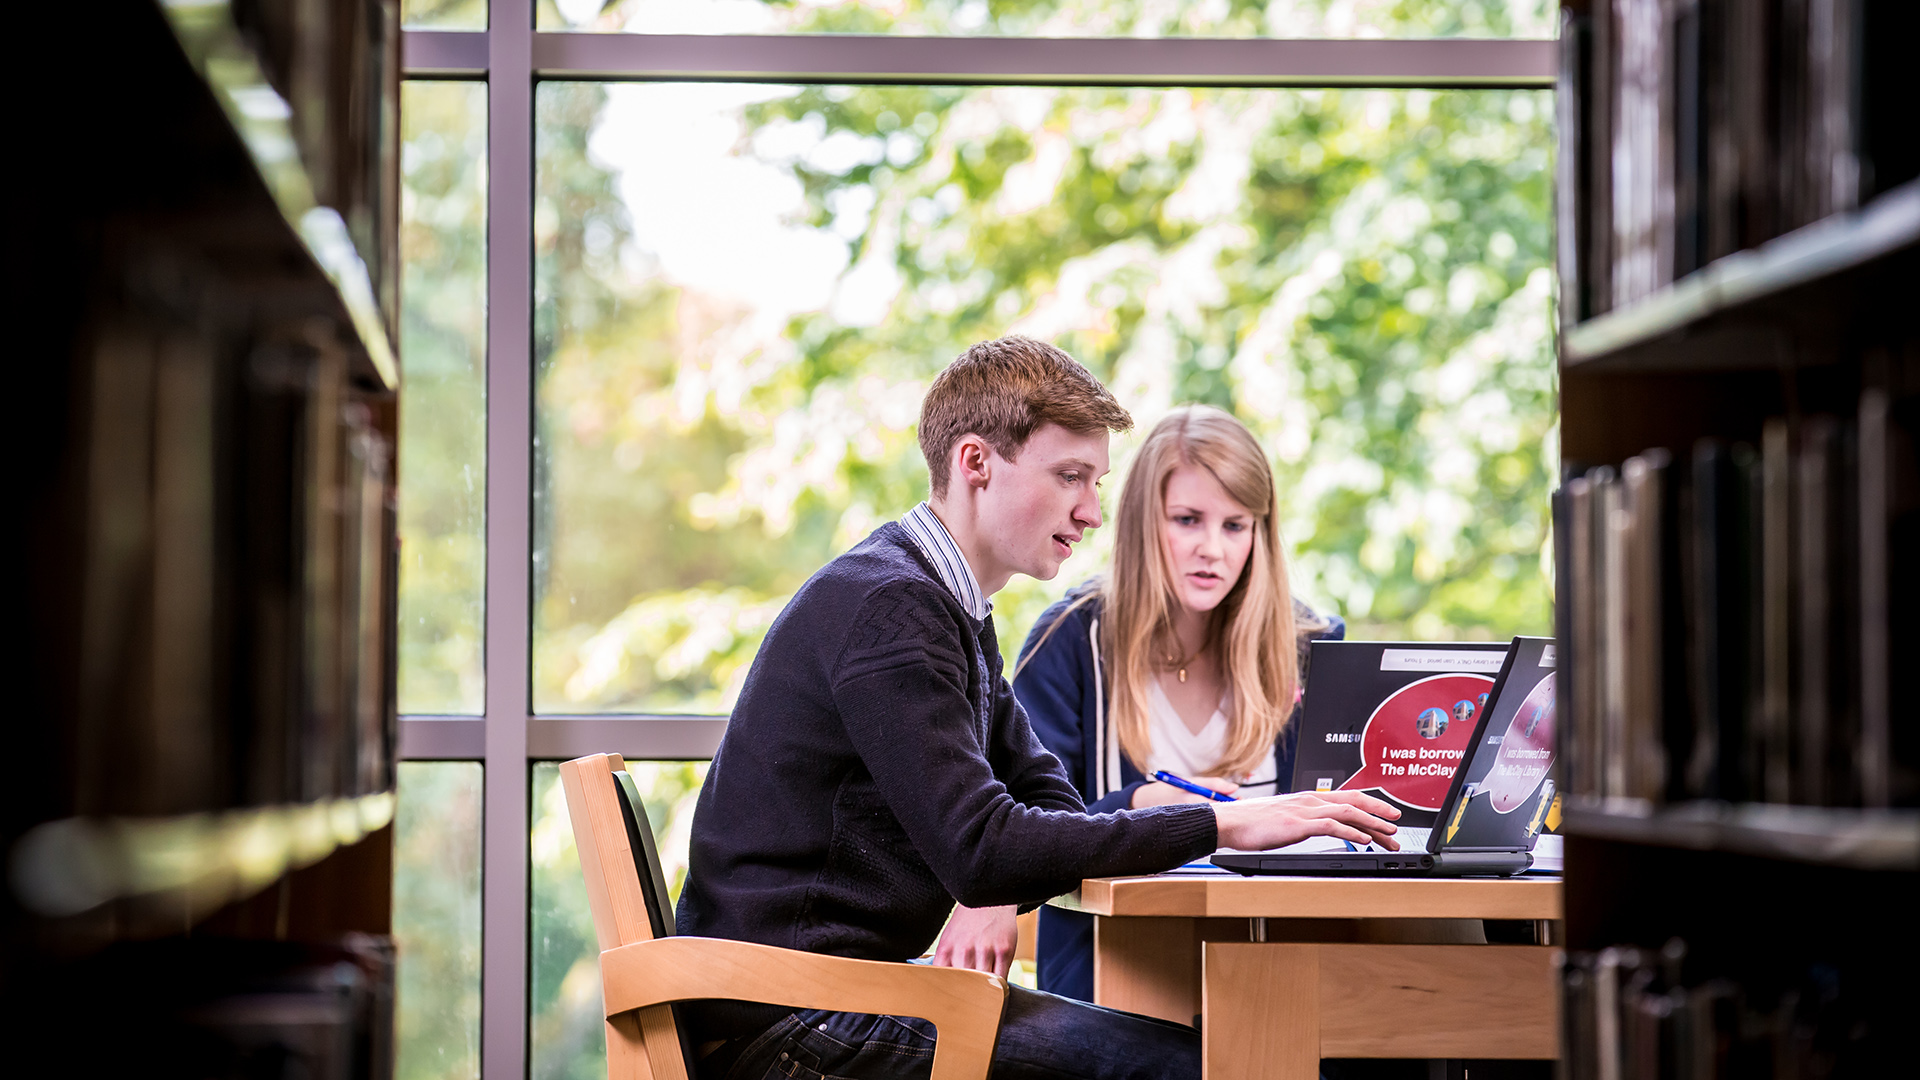 McClay Library Queen's University Belfast interior view users people young